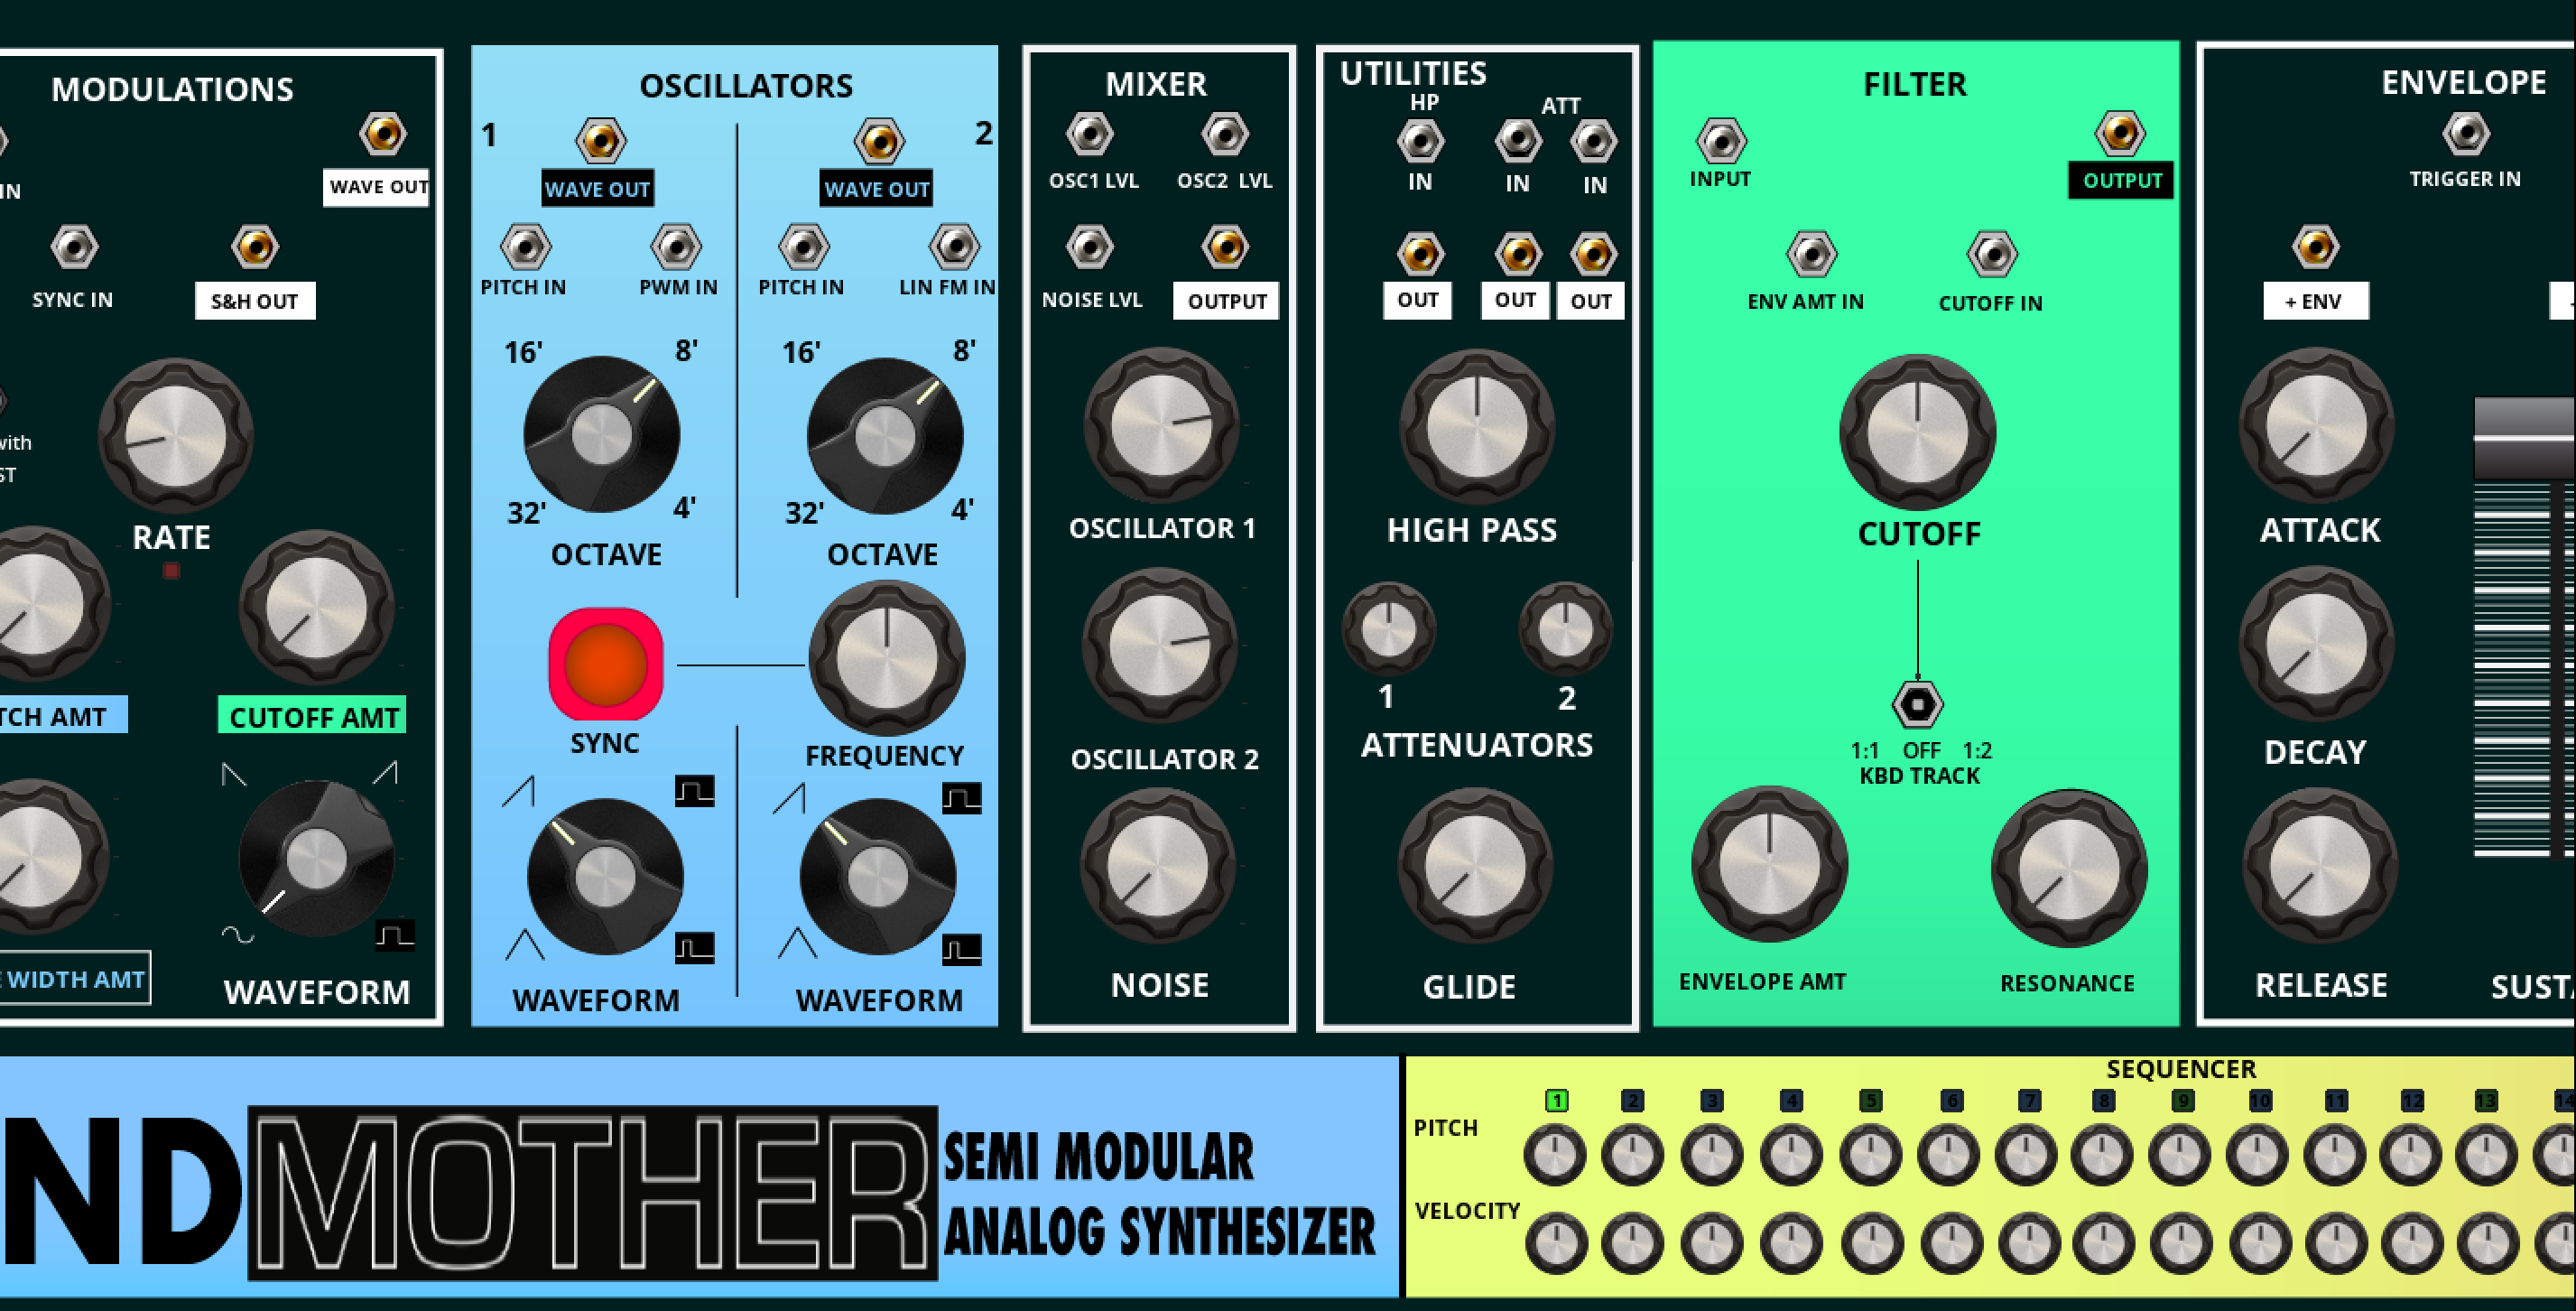 Grandmother Beta Entry Reaktor User Library Electronics Technology 02 08 12 Semi Modular Analog Synthesizer With A Built In Arpeggiator